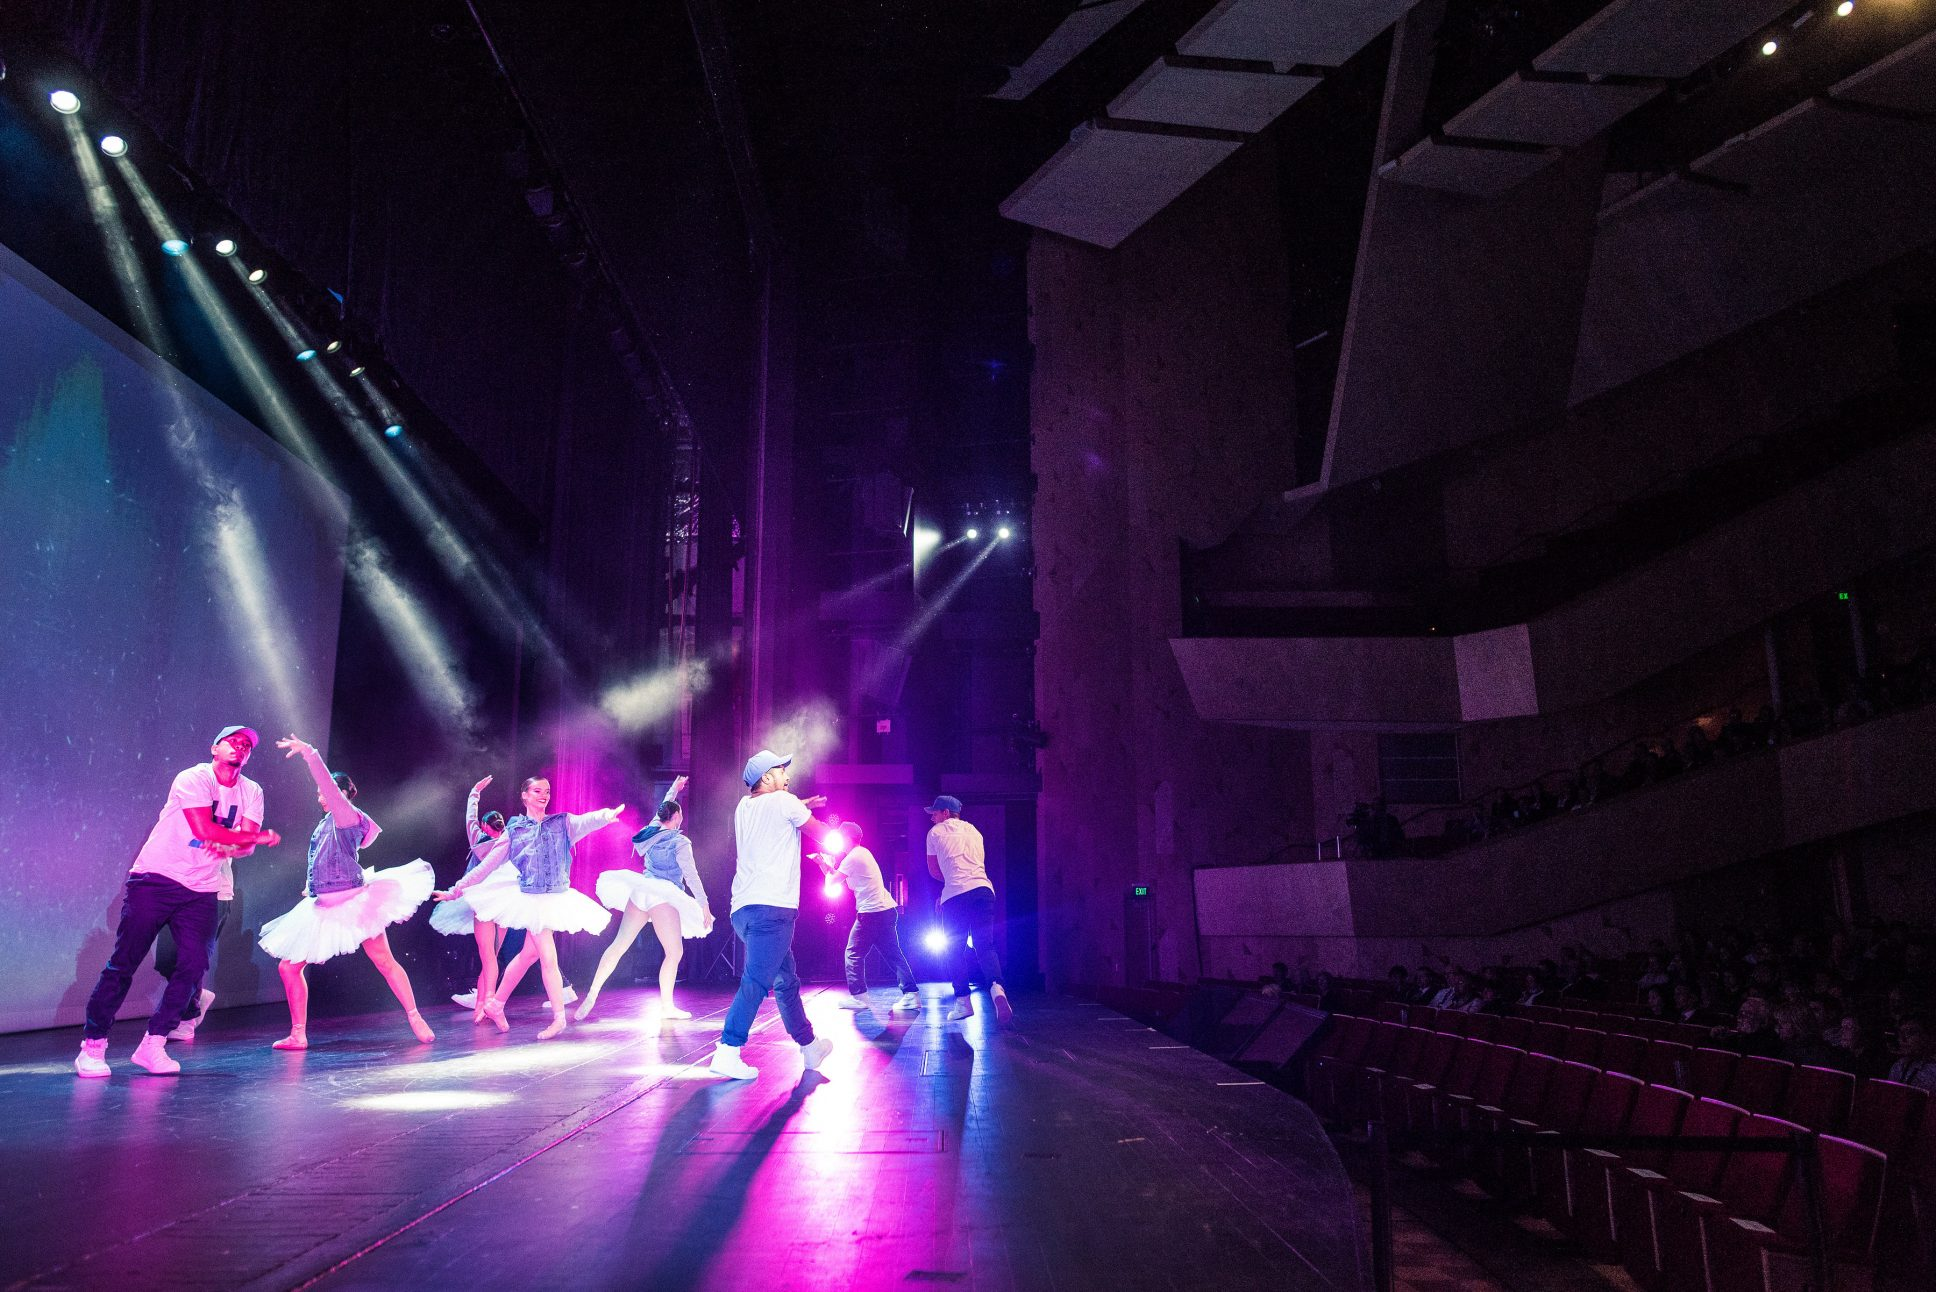 Stage performance at Aotea Centre in Auckland.